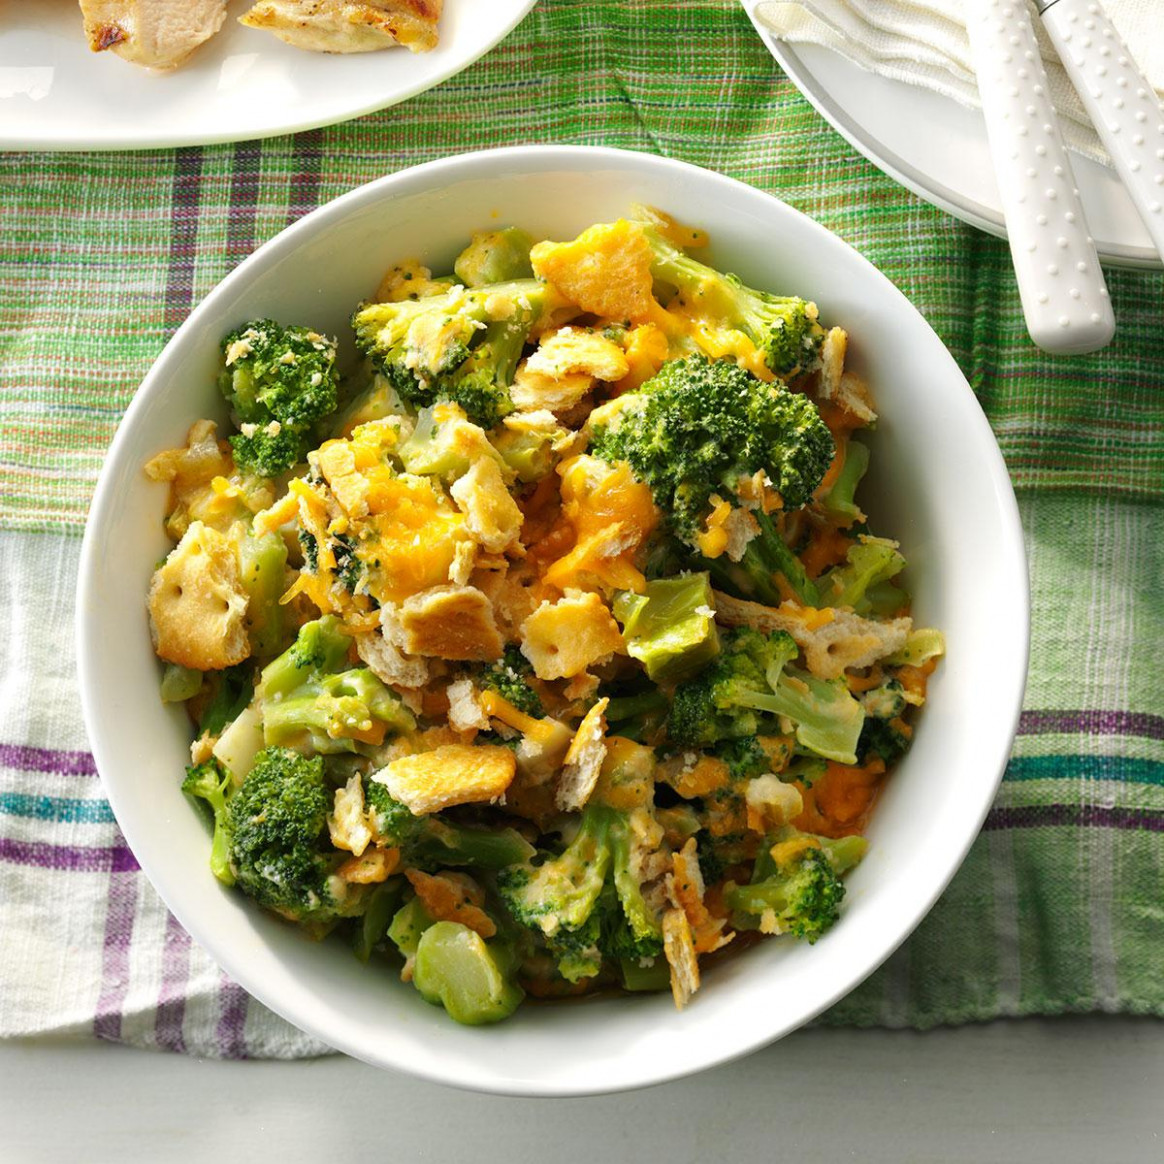 Slow-Cooked Broccoli Recipe | Taste of Home